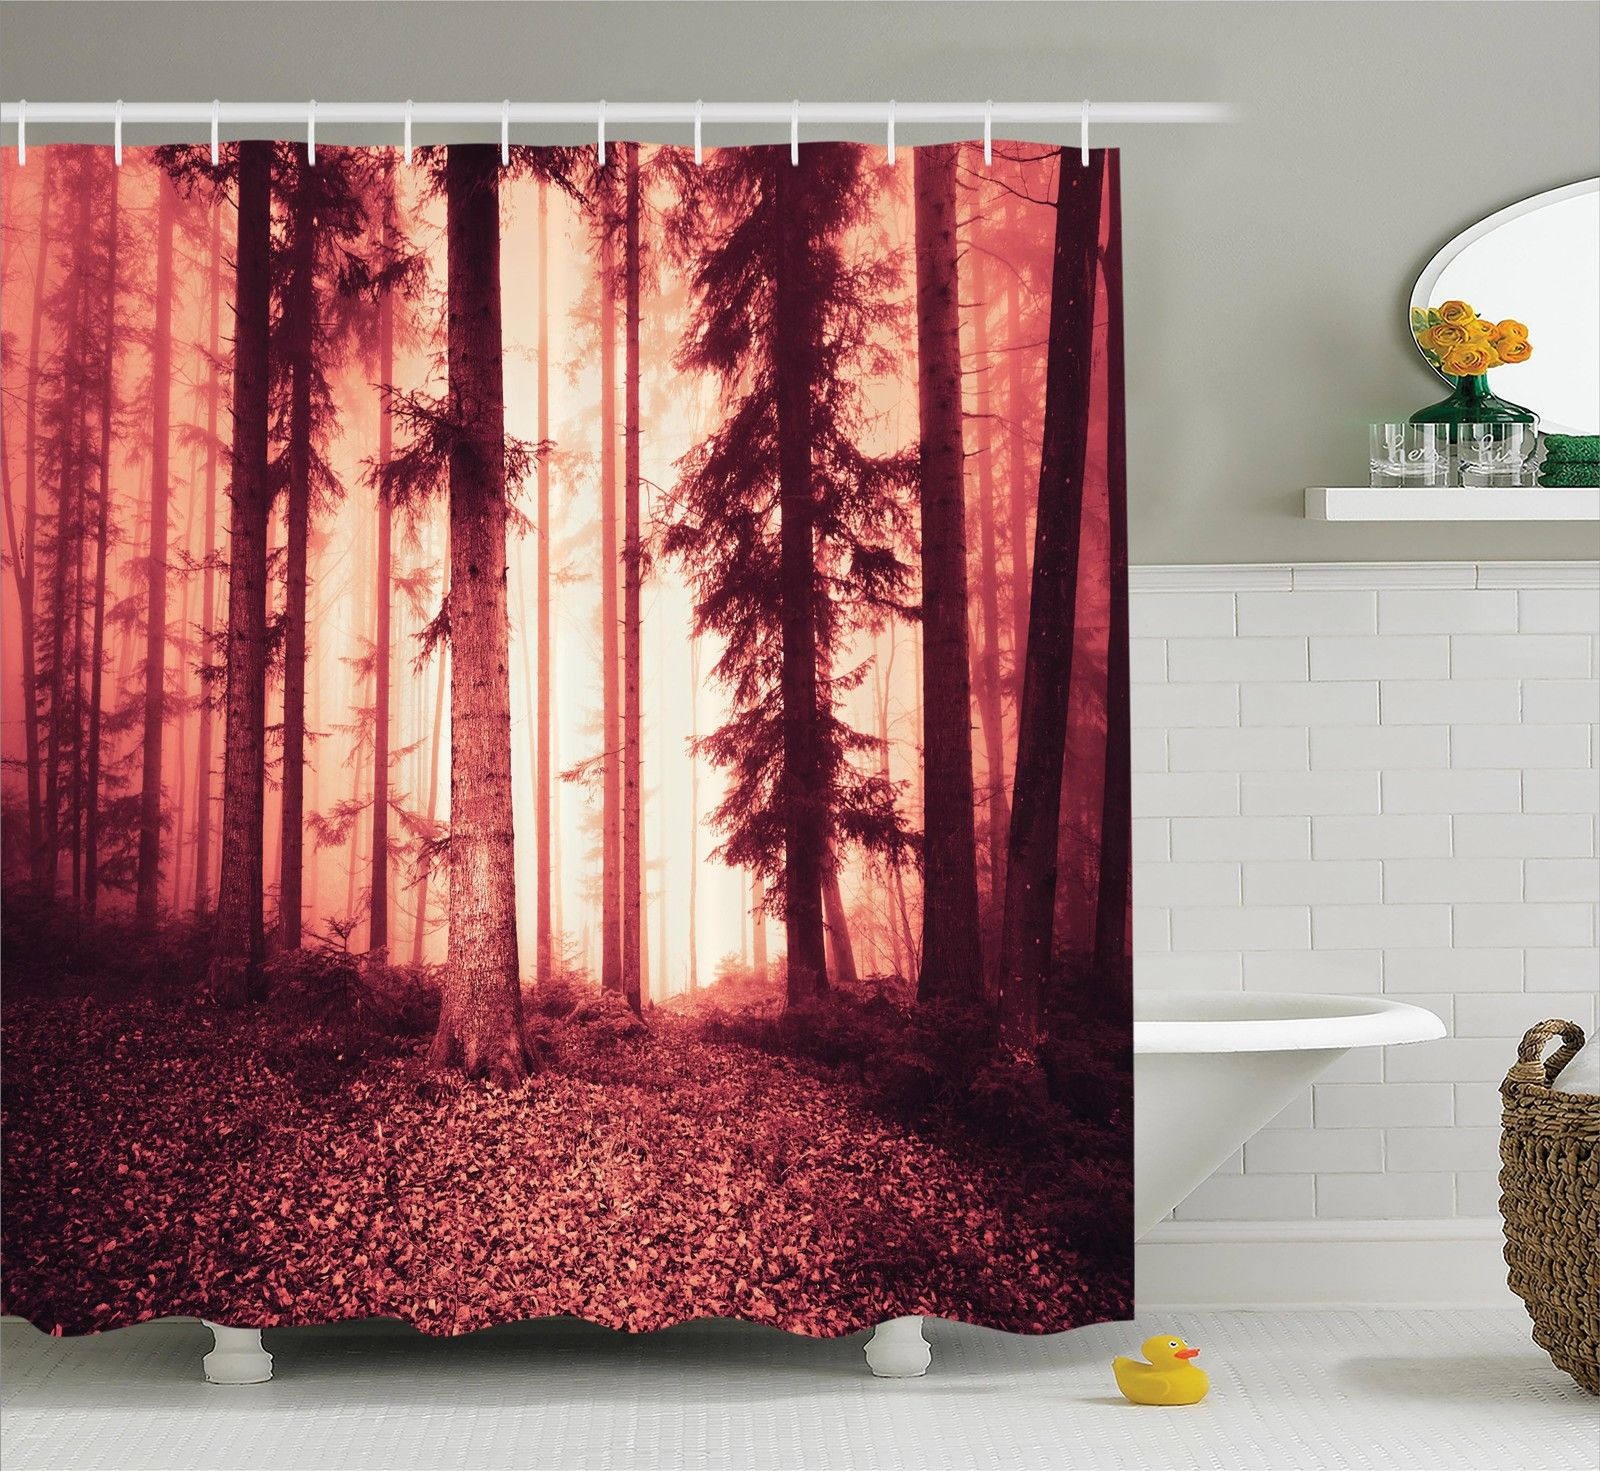 Foggy and Spooky Forest Trees Nature Twlight Fall Leaves Art Shower Curtain Set